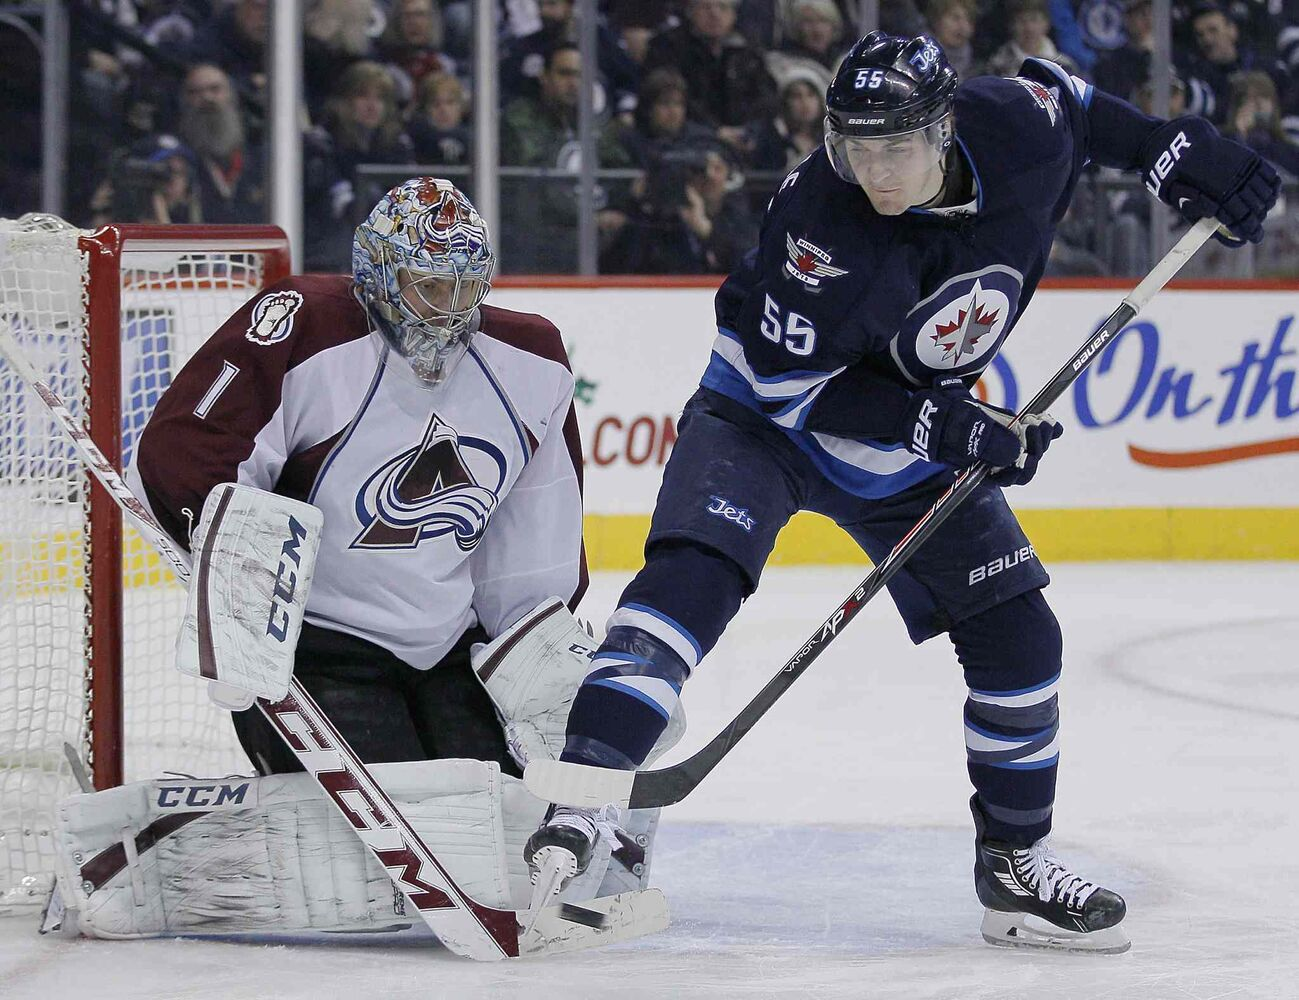 Winnipeg Jets forward Mark Scheifele (right) attempts to deflect the shot past Colorado Avalanche goaltender Semyon Varlamov during the second period.